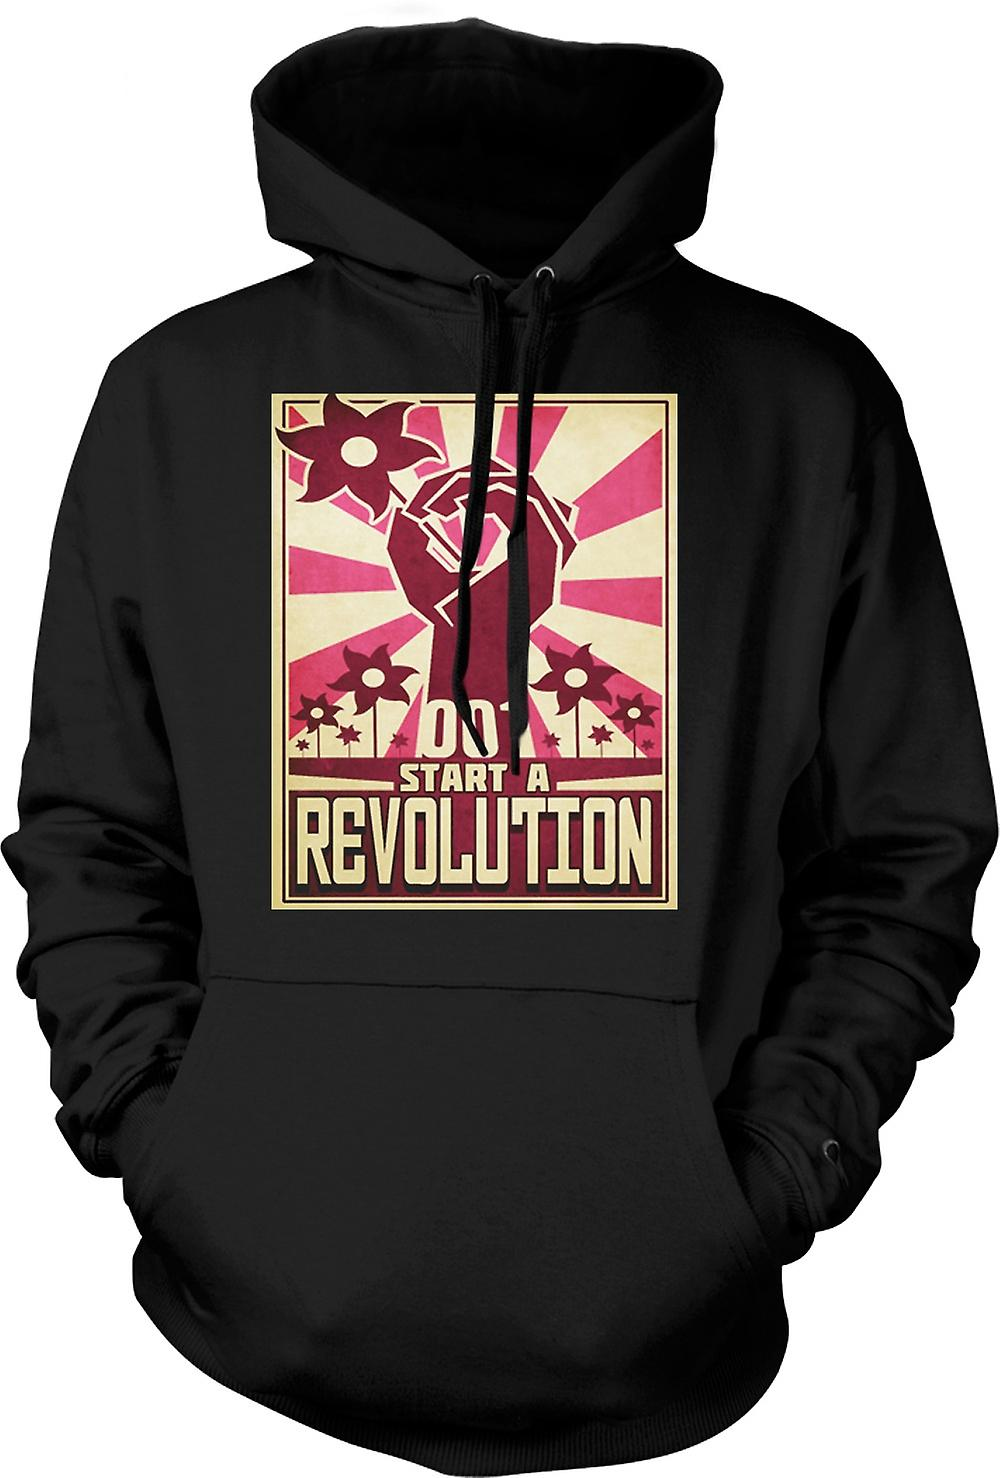 Kids Hoodie - Start A Revolution - Cool Design